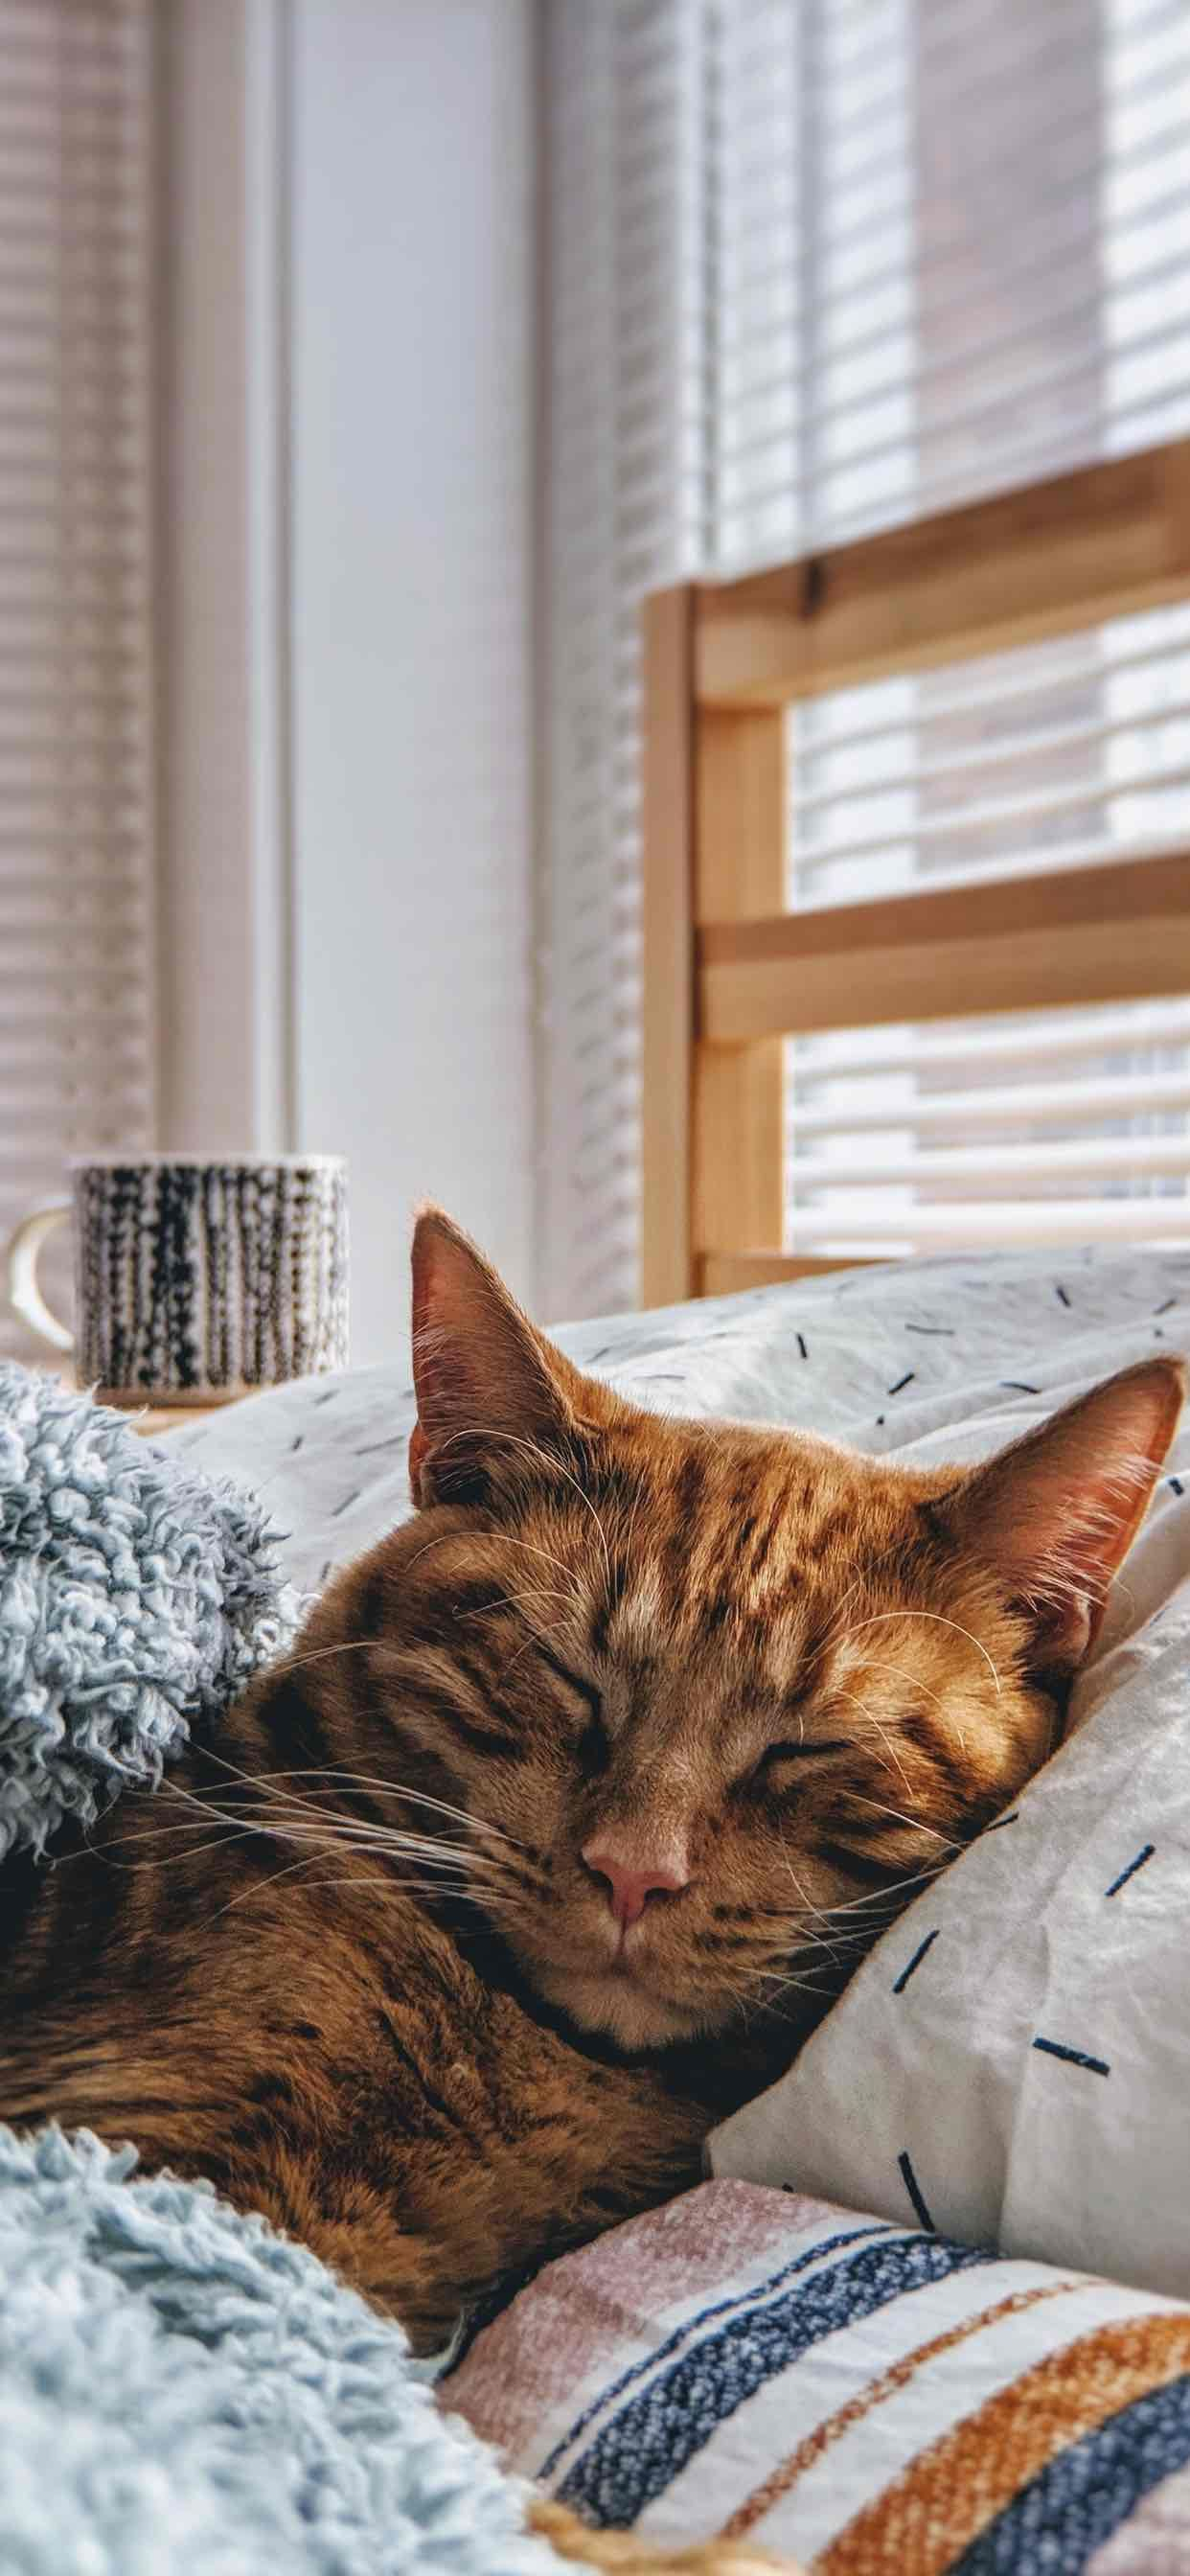 Beautiful Sleeping Cat Wallpaper For Iphone Xs Max Cute